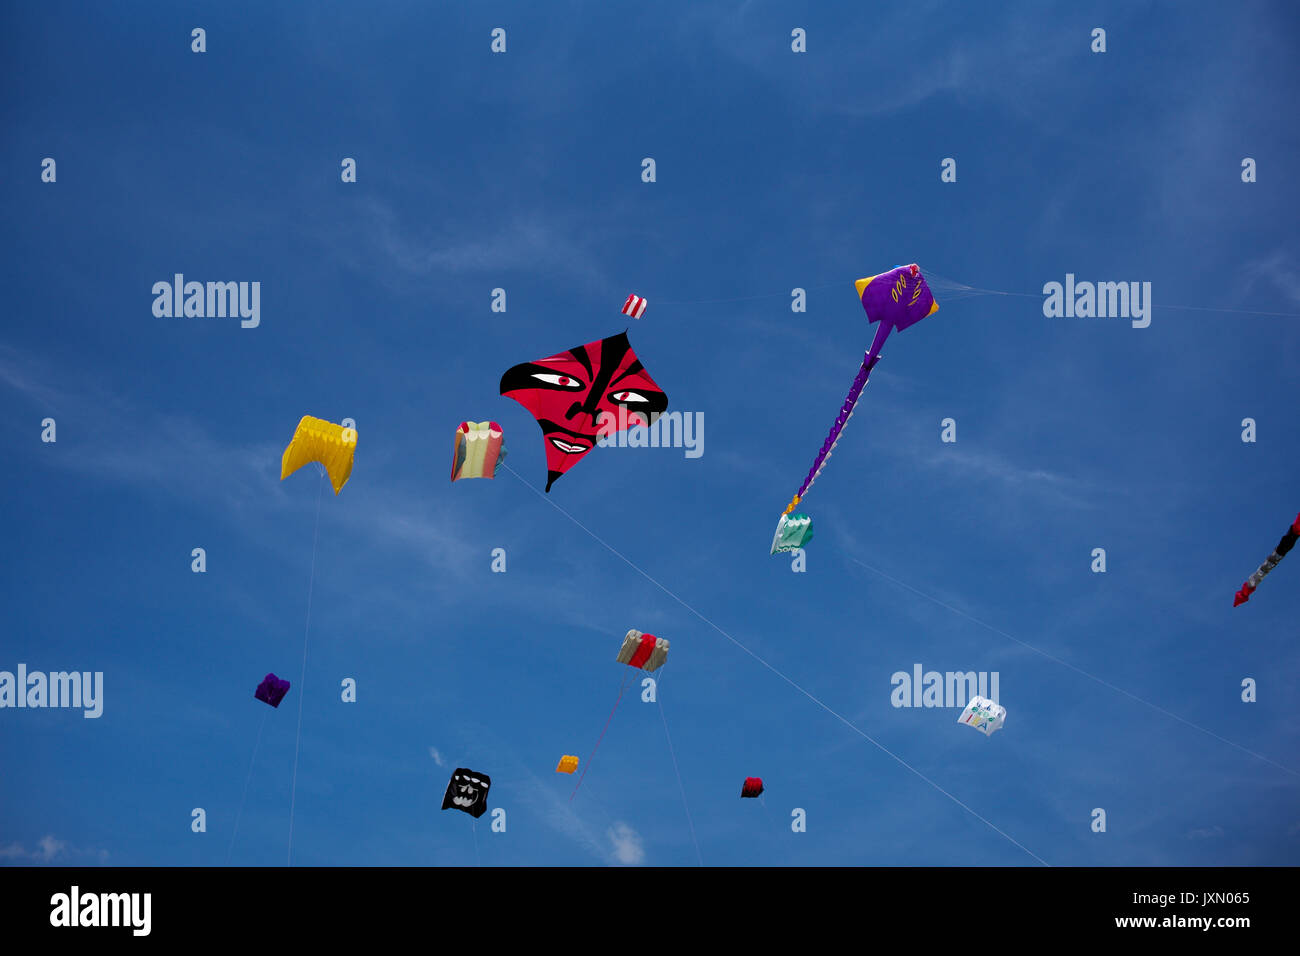 kites flying against a blue sky with one having a distinctive scary face Stock Photo